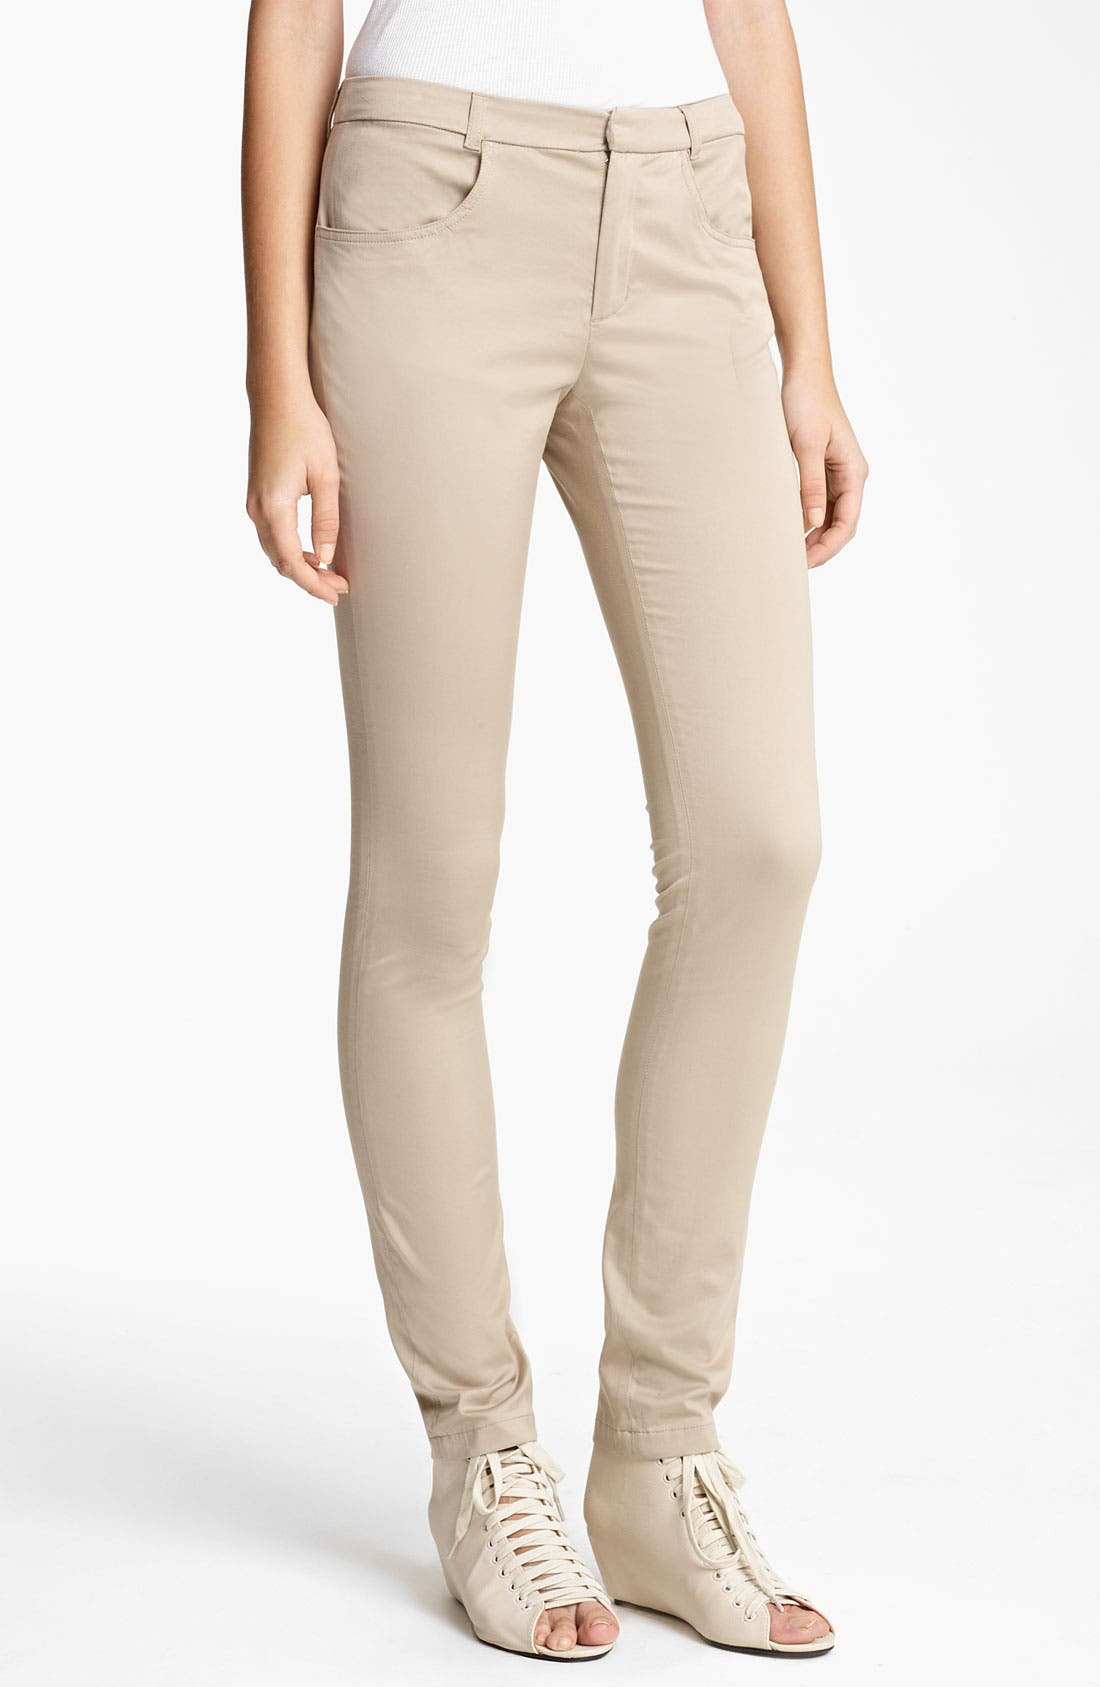 Alternate Image 1 Selected - Band of Outsiders Slim Stretch Cotton Pants